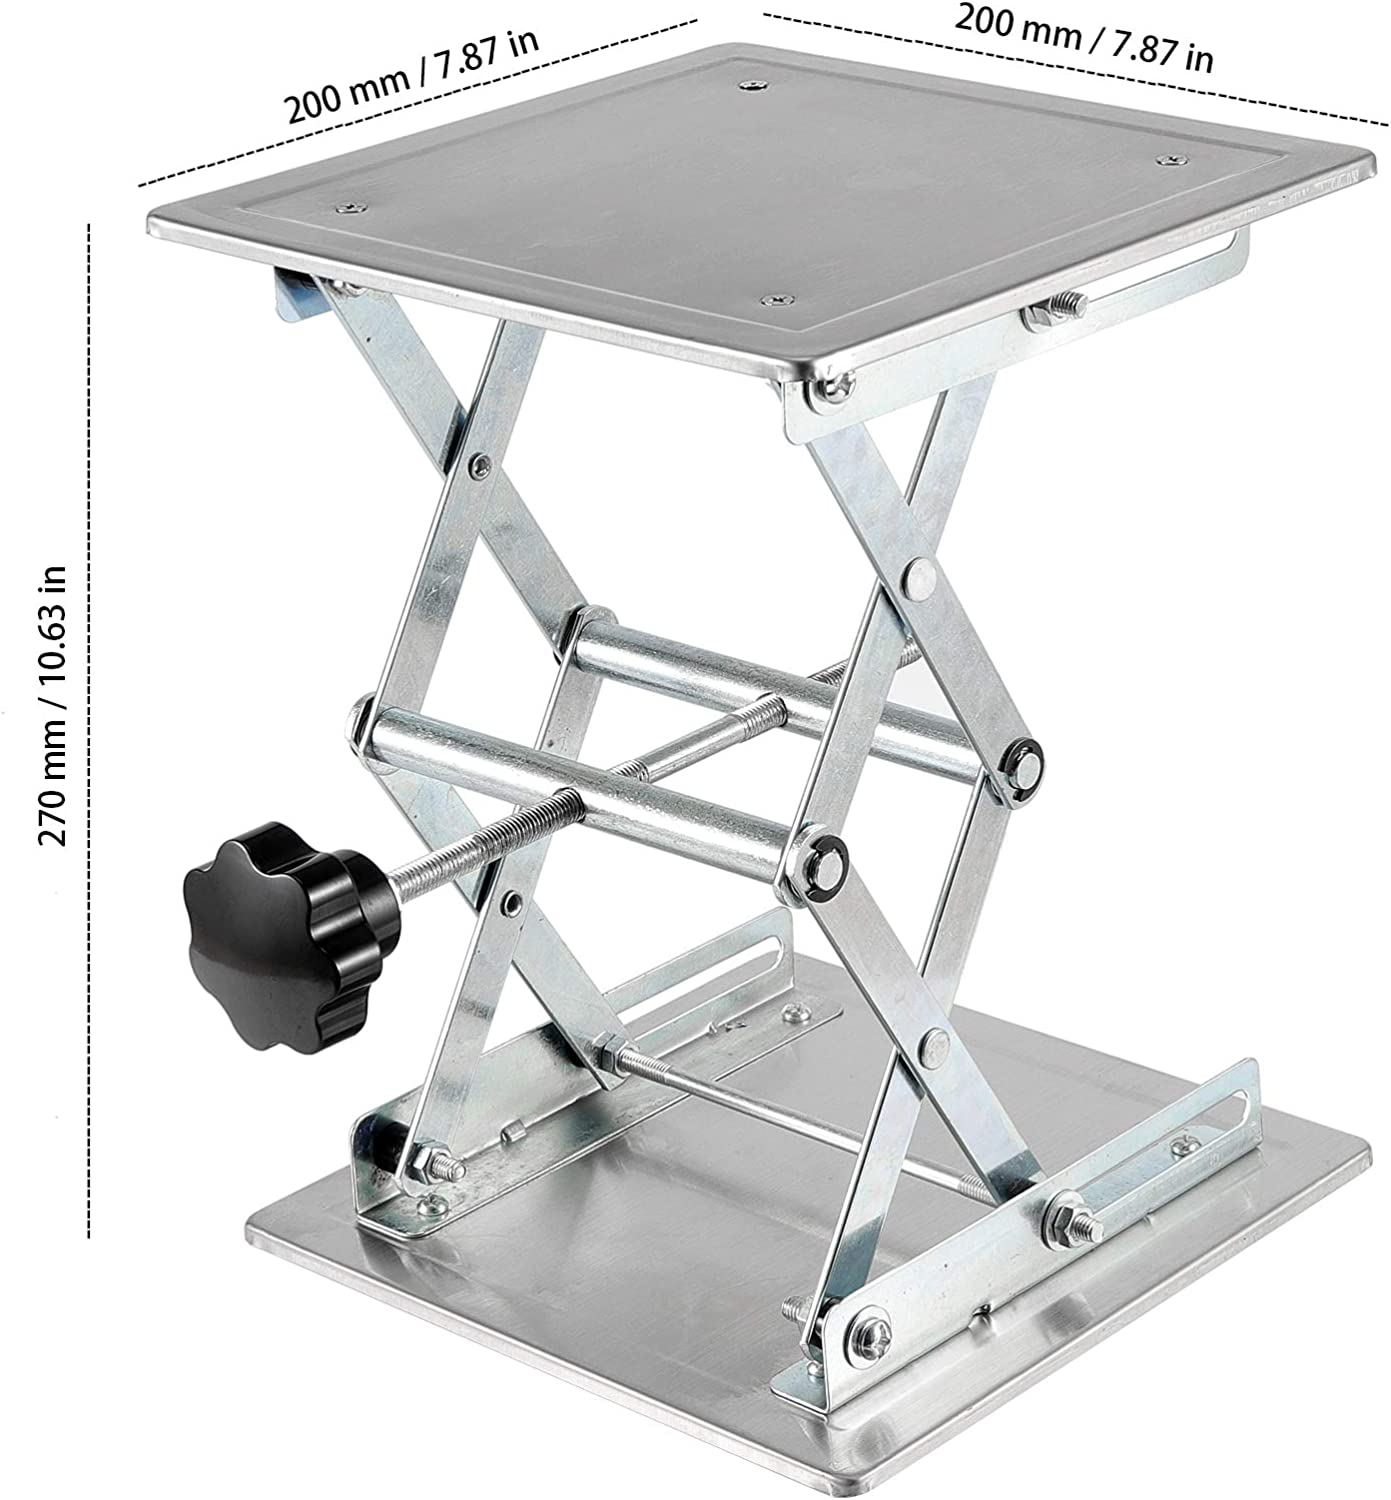 Lab Lift Stand Table Lifting Jack Platform Expandable Table Height Range from 85mm to 270mm ZEONHAK 2 PCS 8 x 8 Inches Laboratory Lift Stand Weight Limit 15kg Lab Jack Scissor Stand Platform